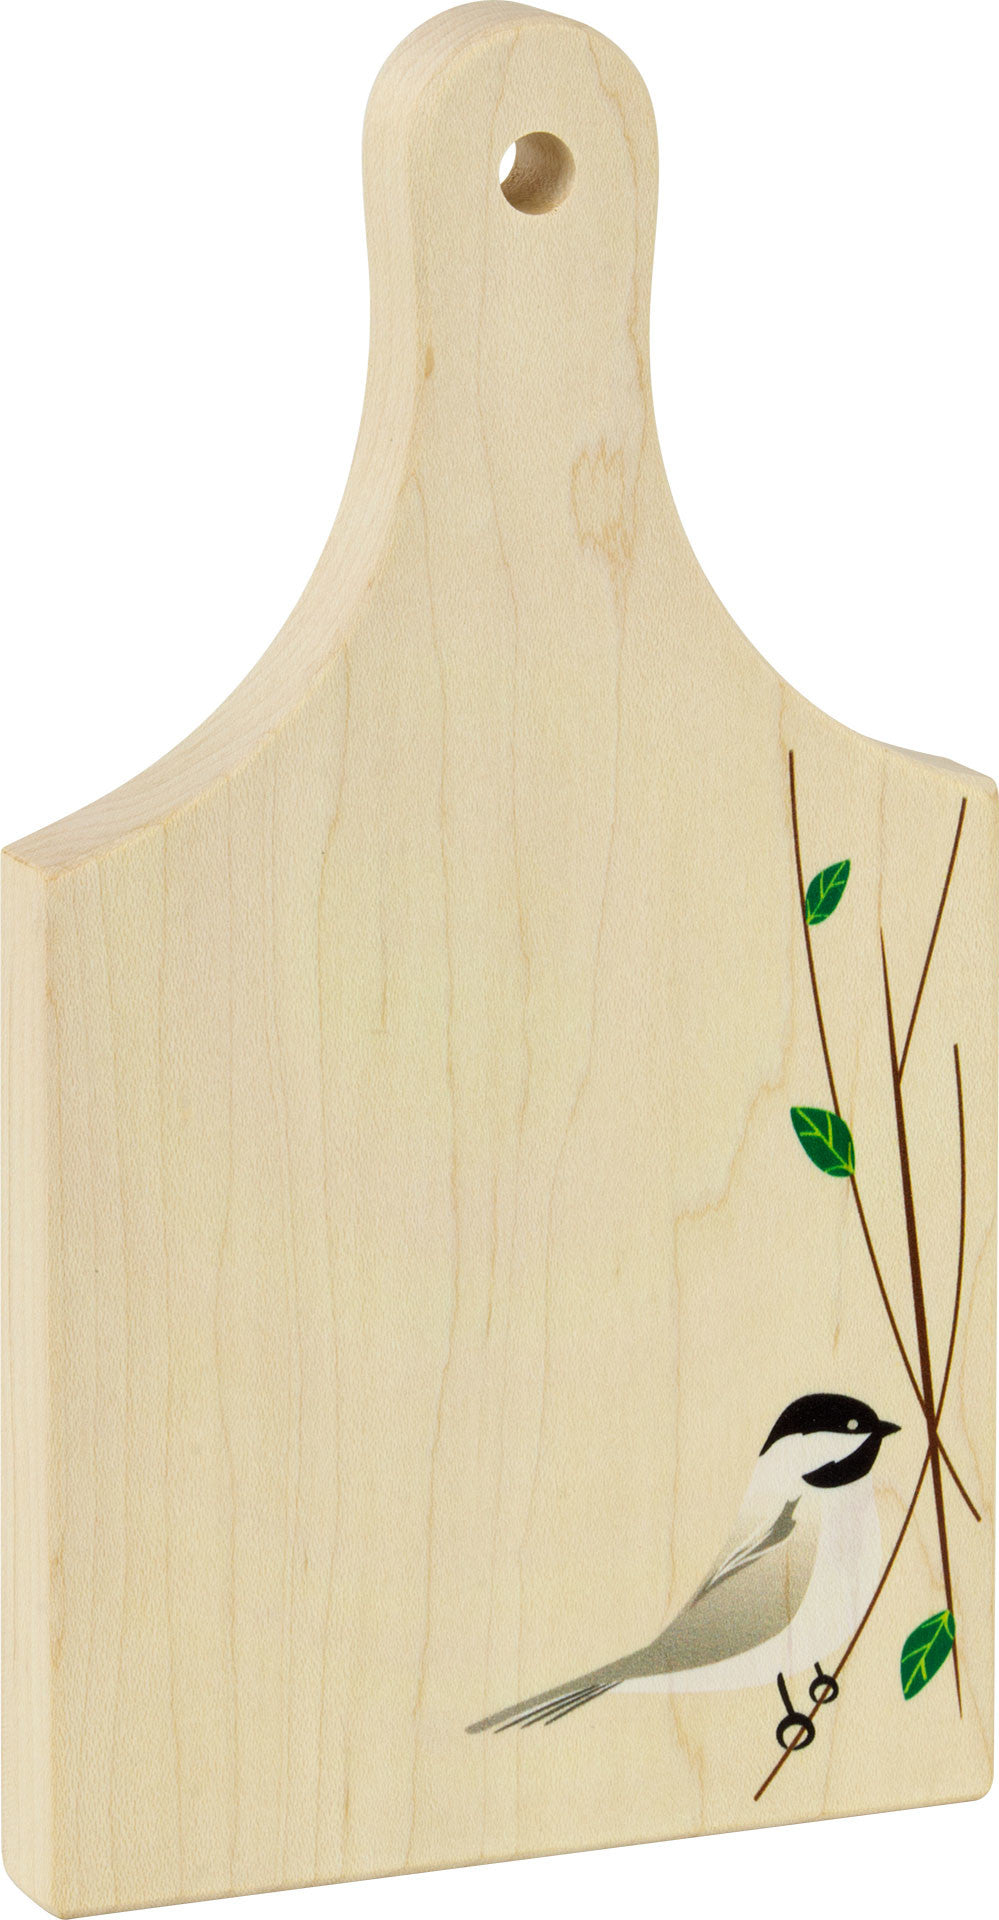 "Chickadee 9"" Cutting Board - Heart of the Home PA"